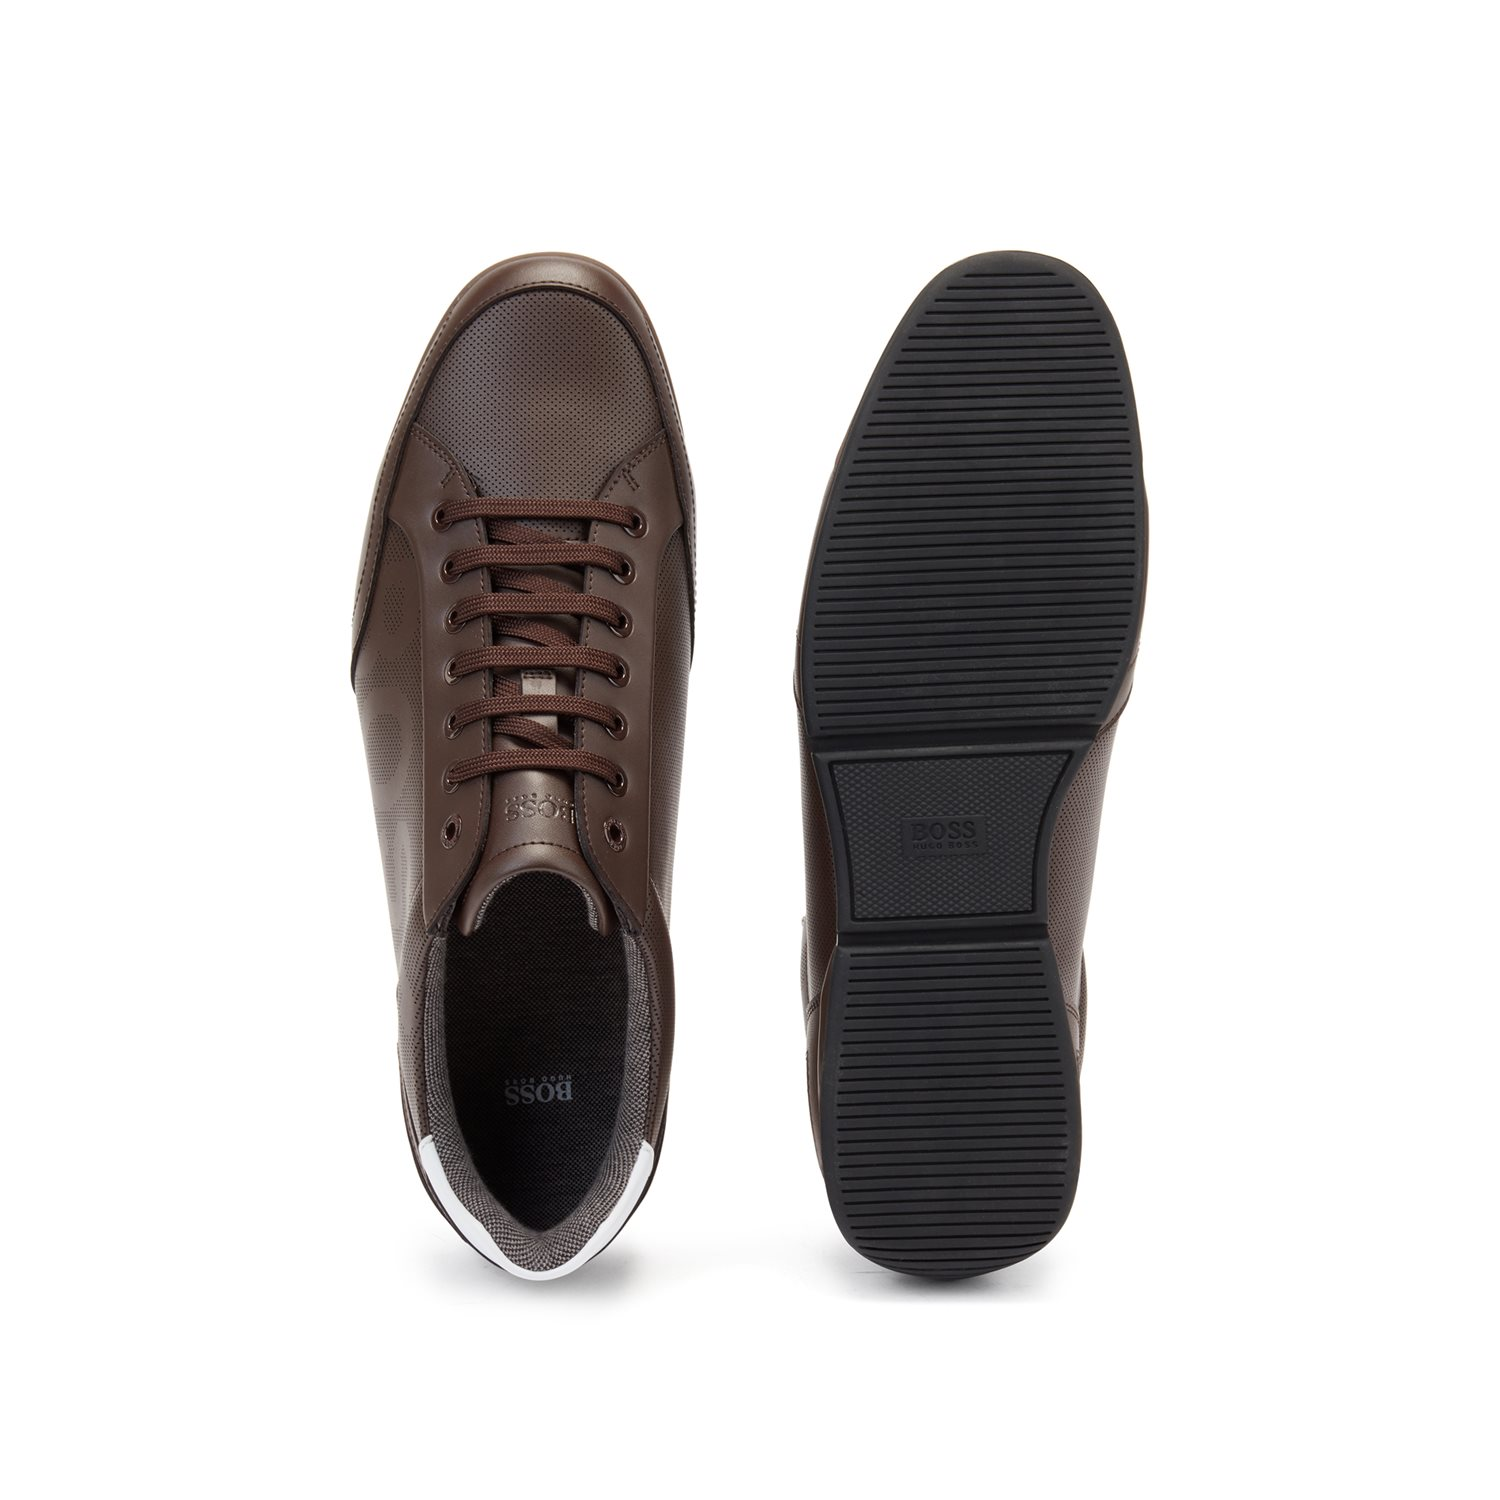 BOSS Low-profile Leather sneakers, dark bown, 42